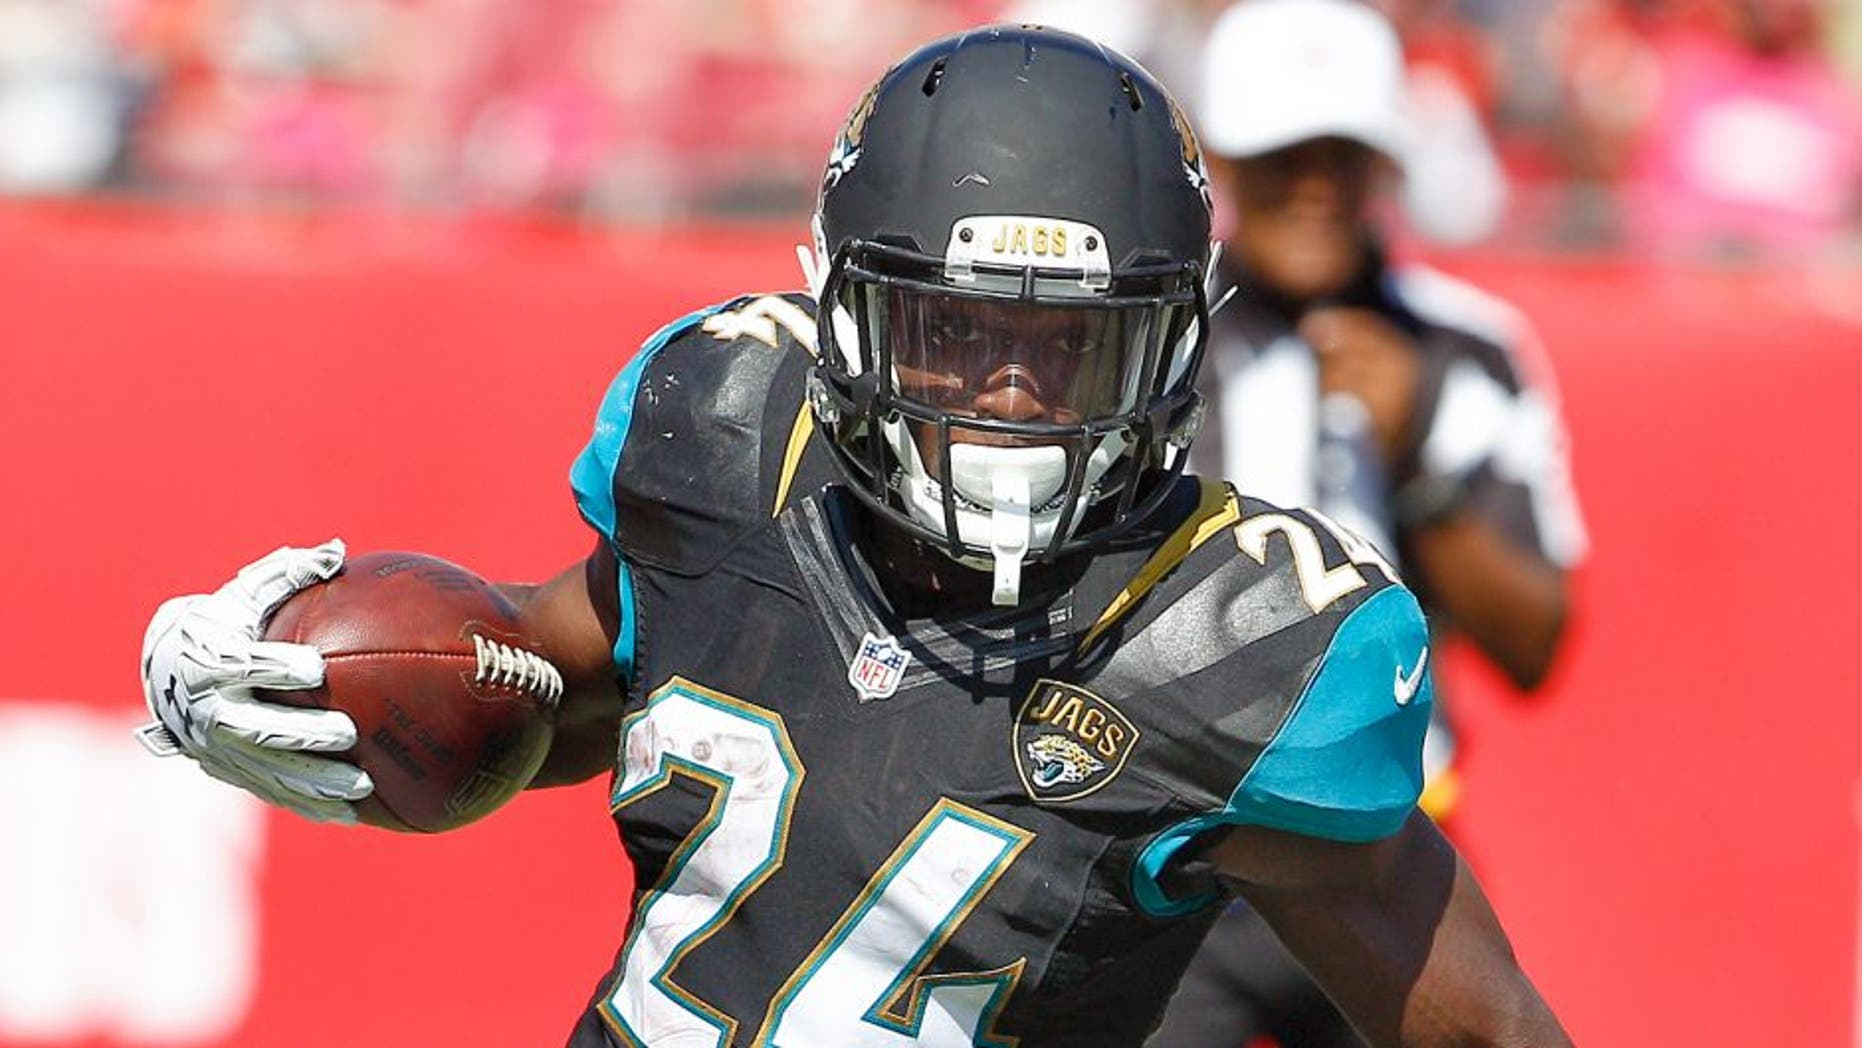 Oct 11, 2015; Tampa, FL, USA; Jacksonville Jaguars running back T.J. Yeldon (24) runs the ball during the second half of an NFL football game against the Tampa Bay Buccaneers at Raymond James Stadium. Tampa won 38-31. Mandatory Credit: Reinhold Matay-USA TODAY Sports